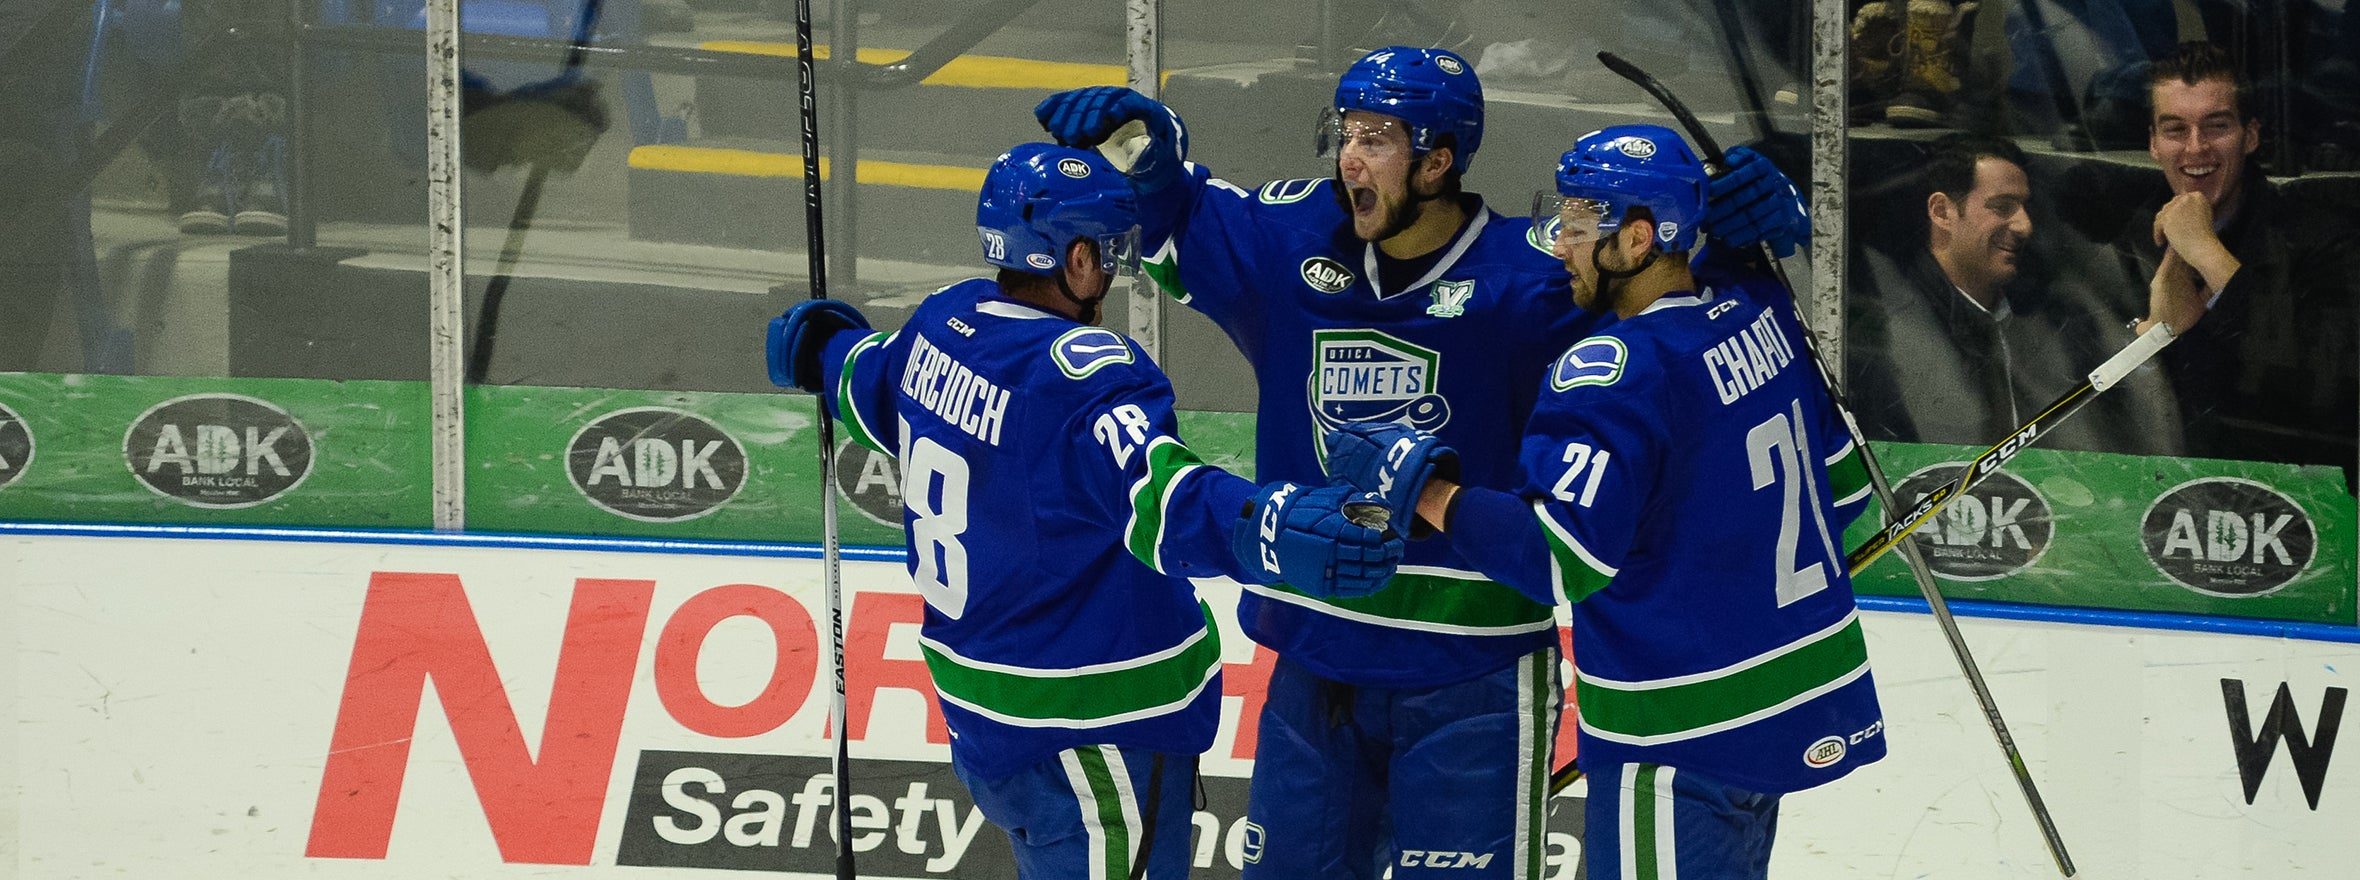 COMRIE'S TWO-GOAL NIGHT SNAPS COMETS LOSING SKID